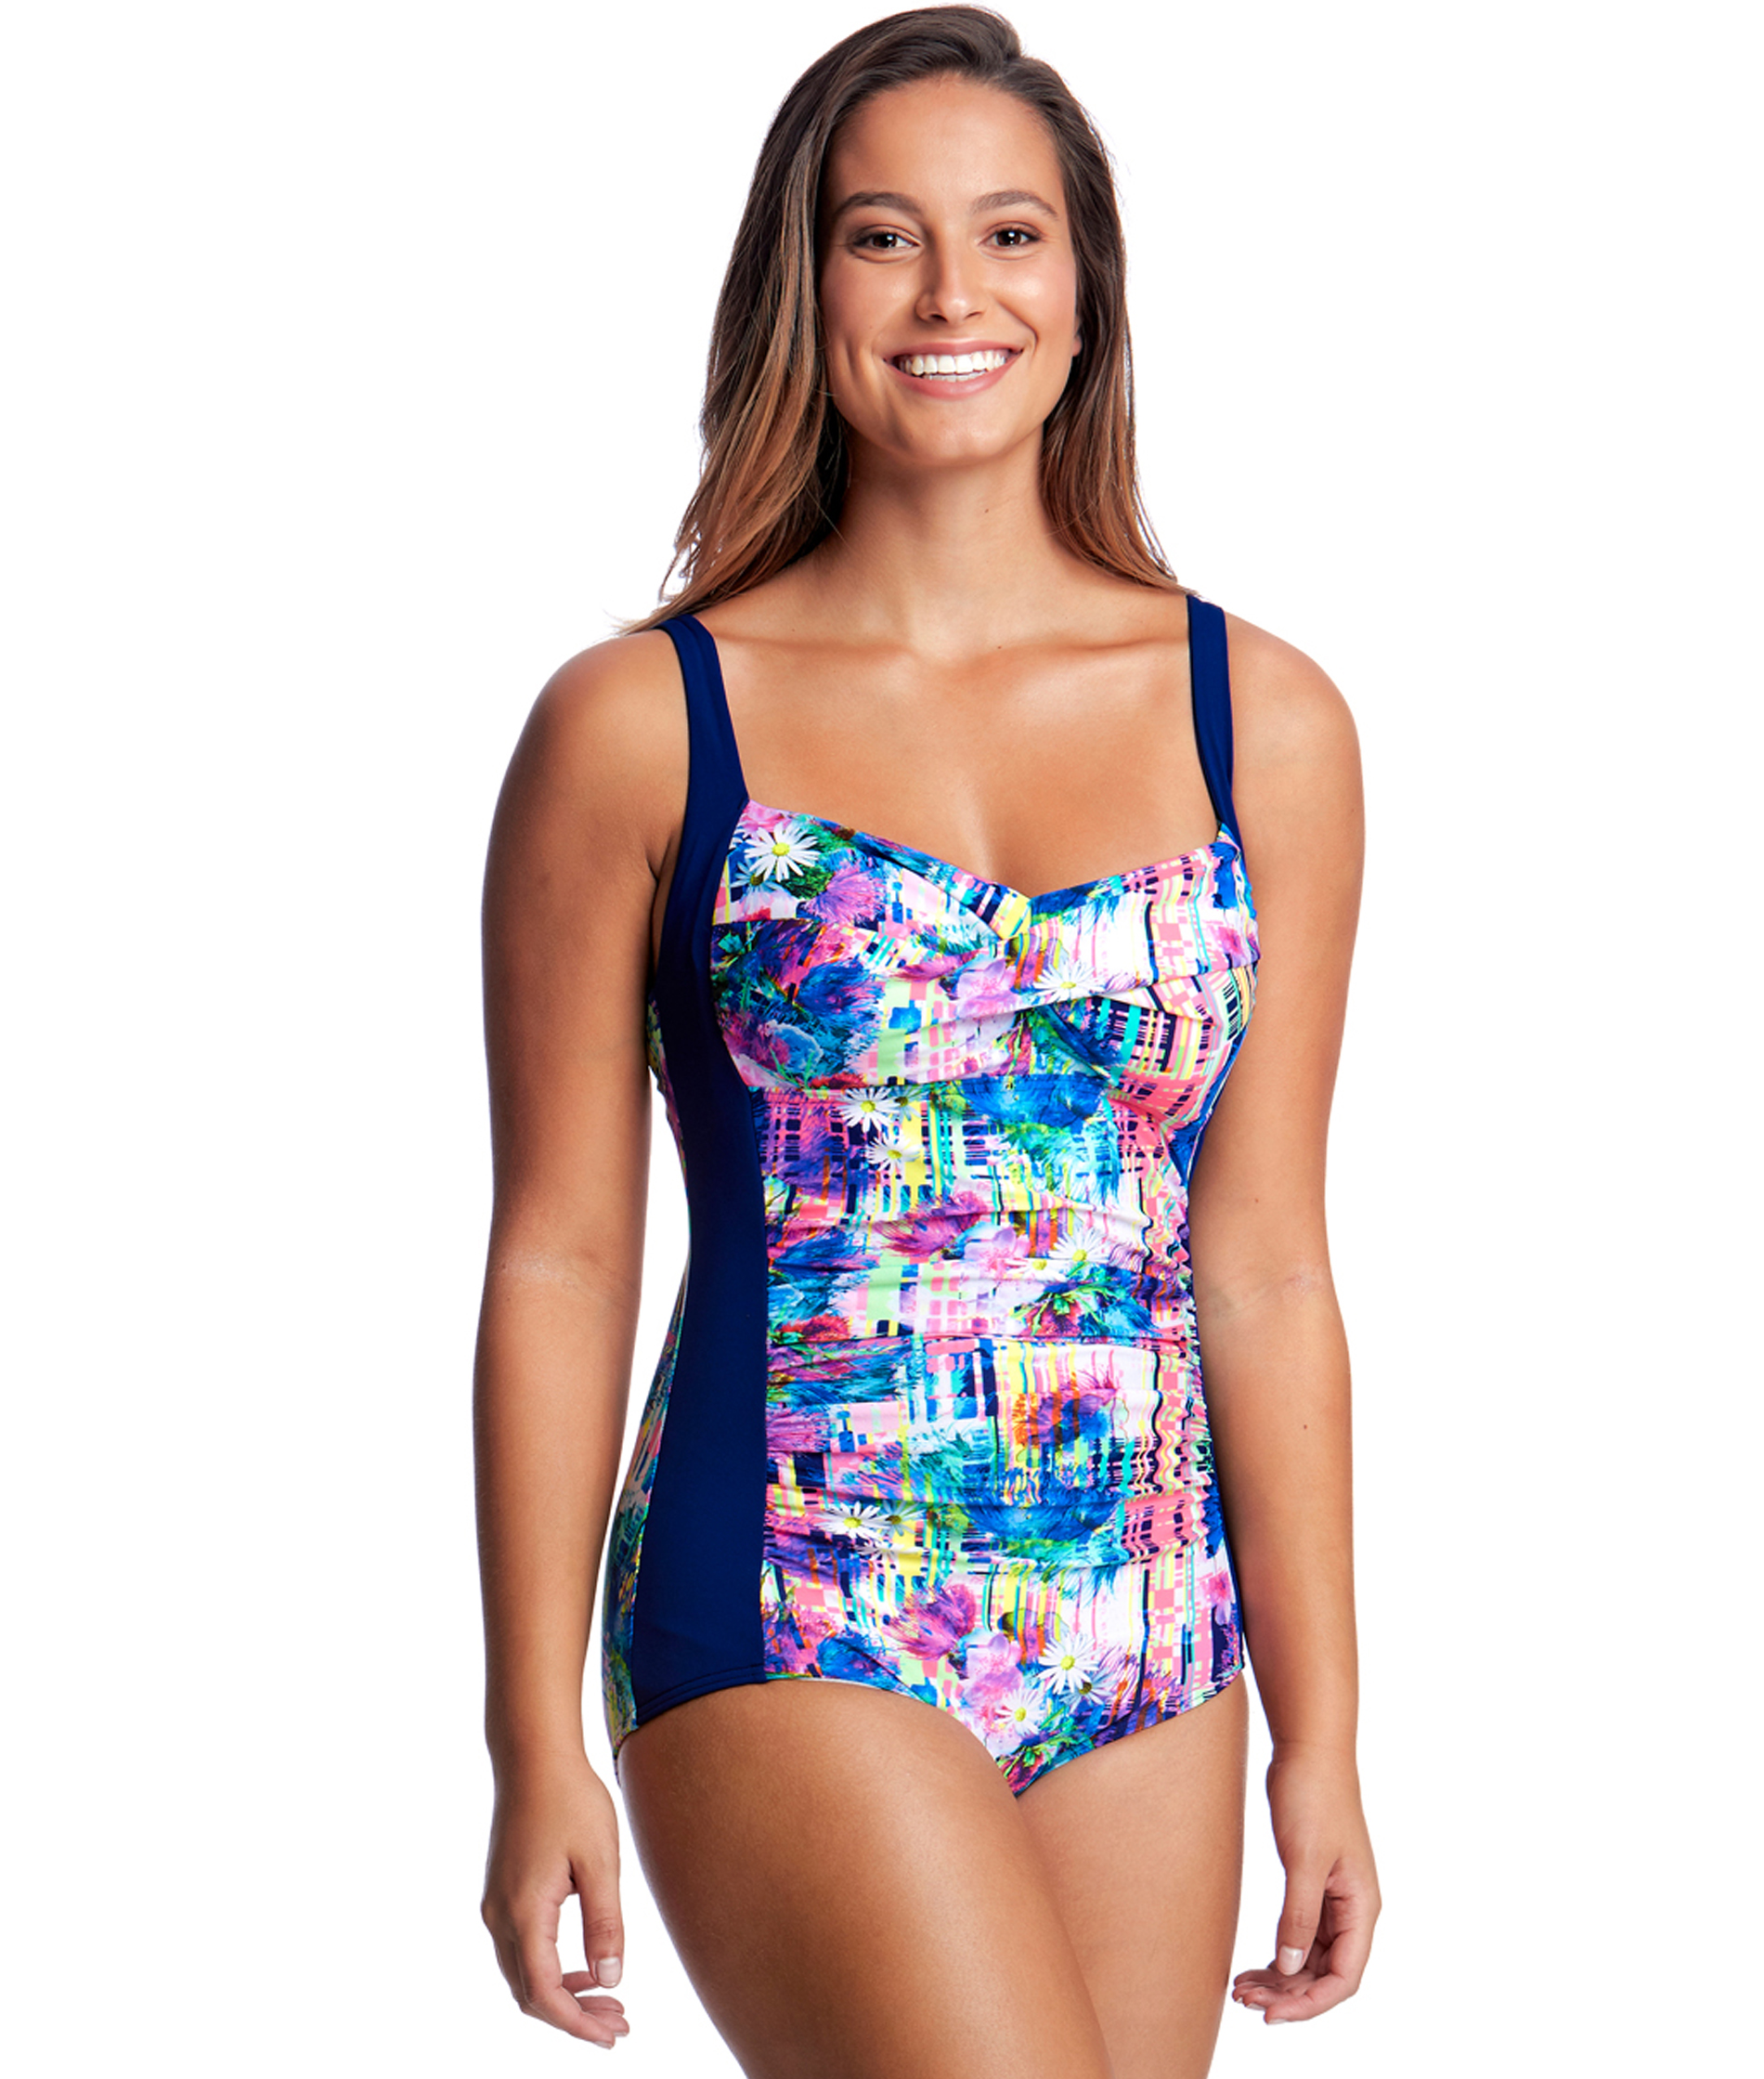 Funkita Form Ladies Alba Wild Ruched One Piece DD-E cup